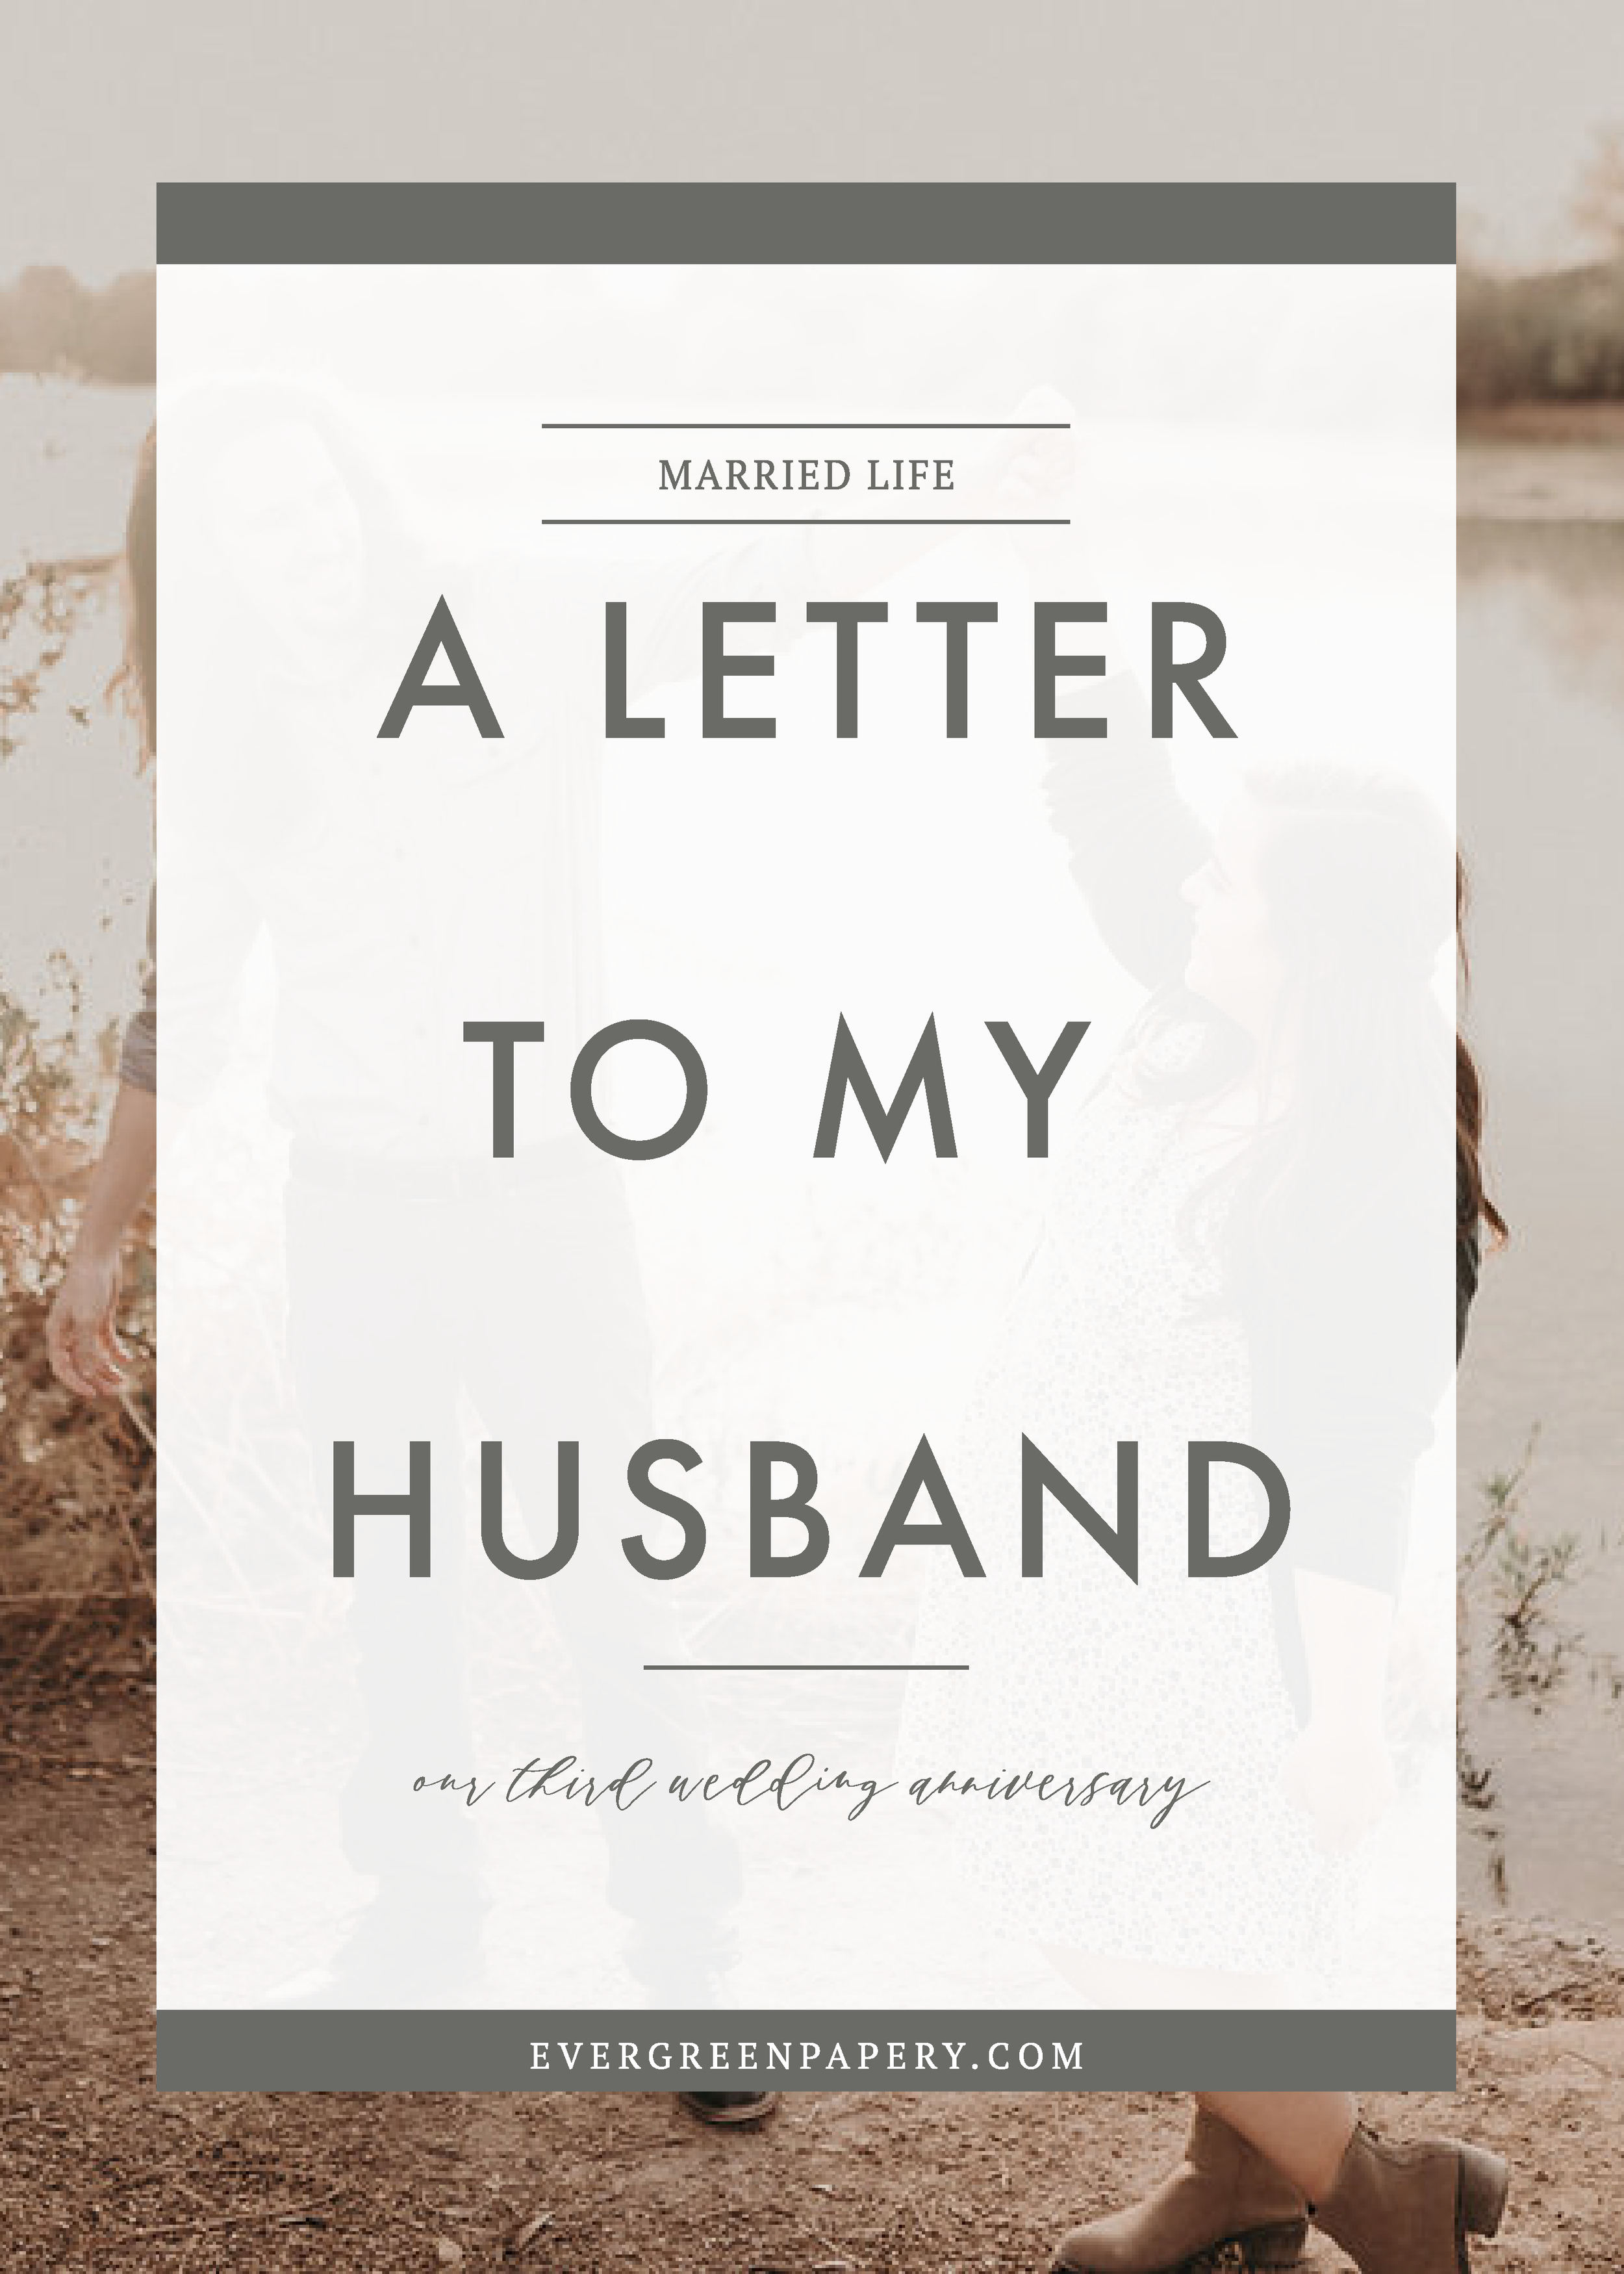 Letter To My Husband Our Third Wedding Anniversary True Love